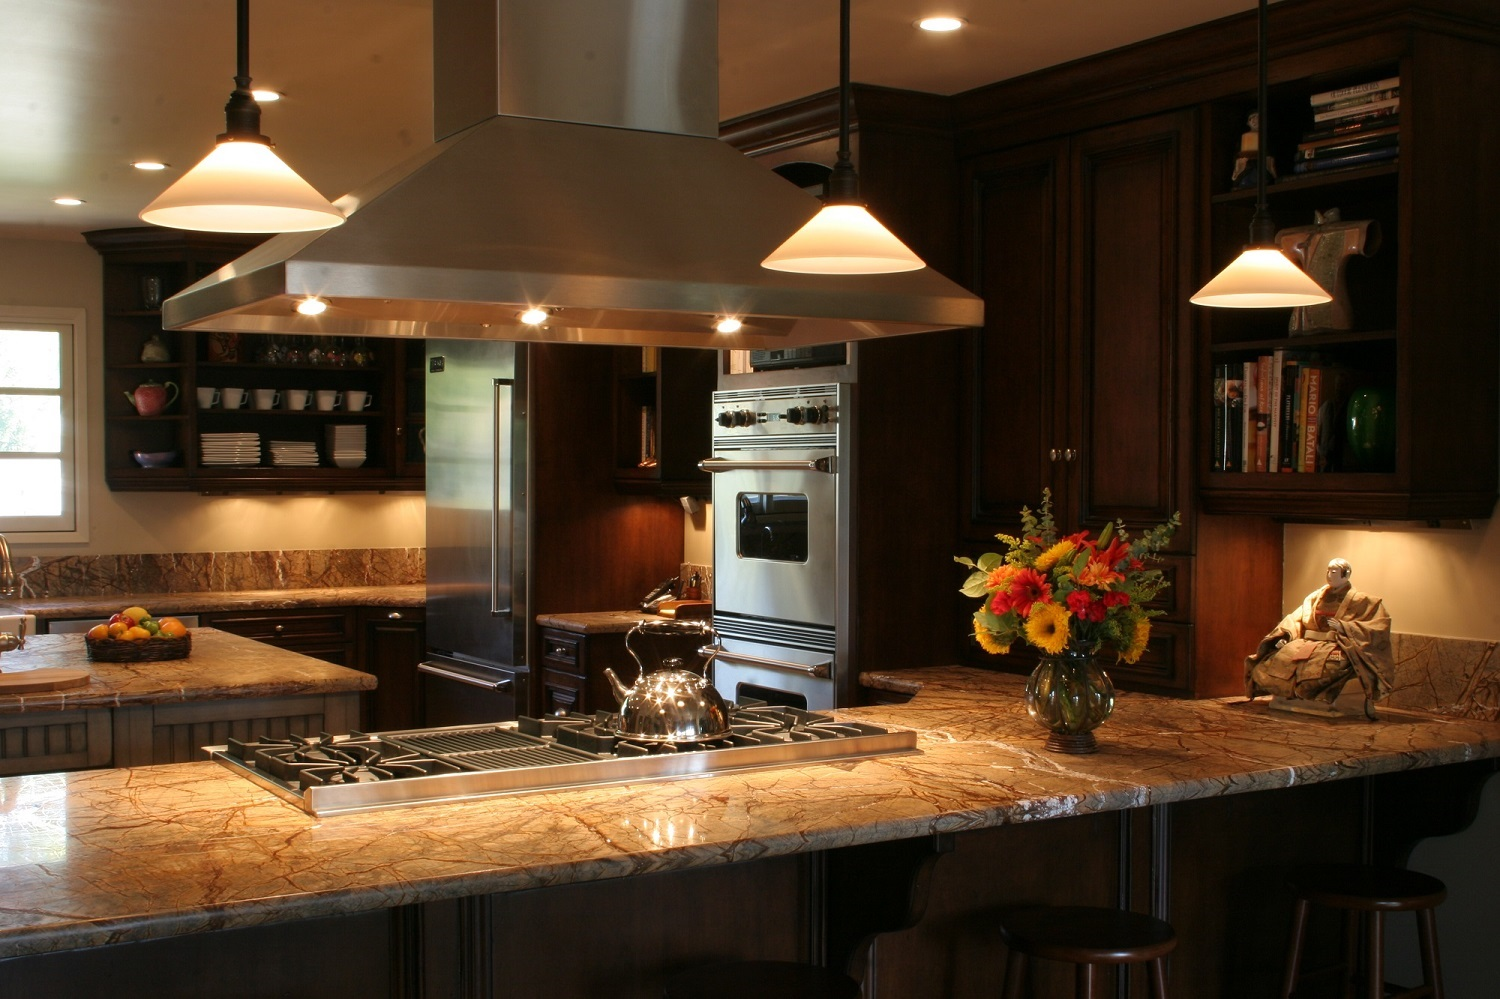 diy kitchen remodel tips kitchen remodel pictures Planning a kitchen remodel Why you should hire a kitchen designer even if you